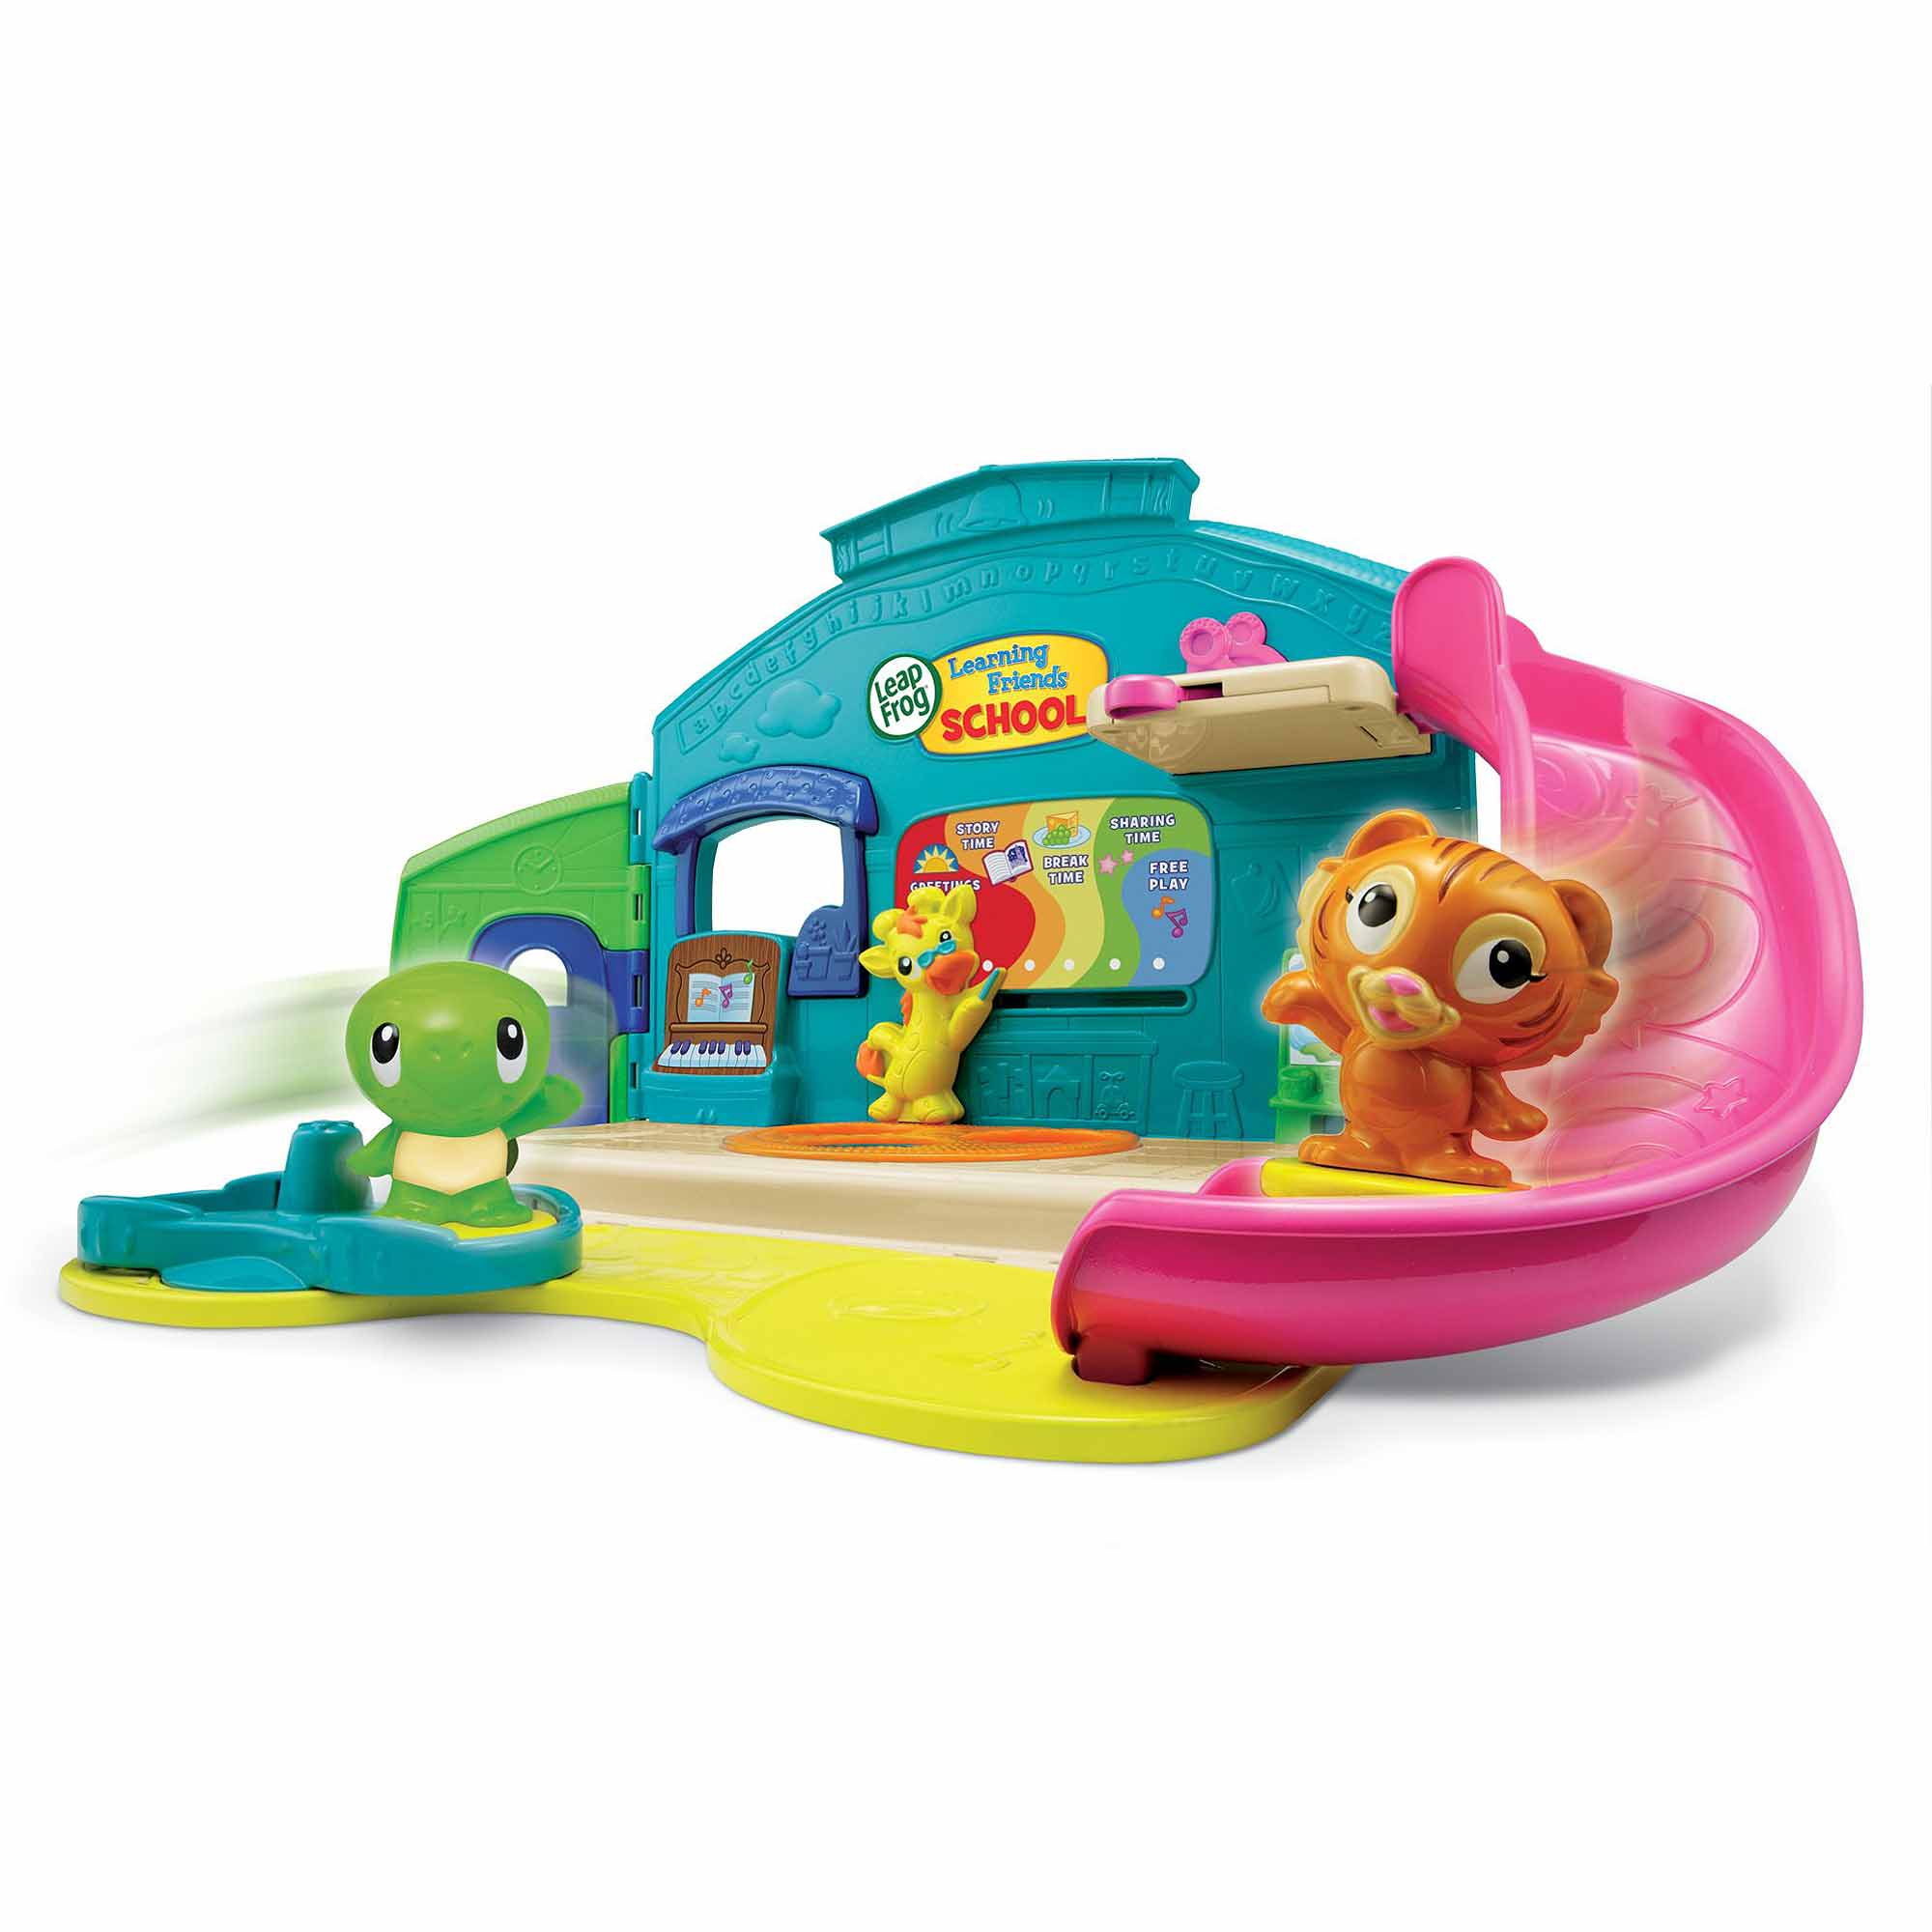 LeapFrog Learning Friends Play and Discover School Play Set by LeapFrog